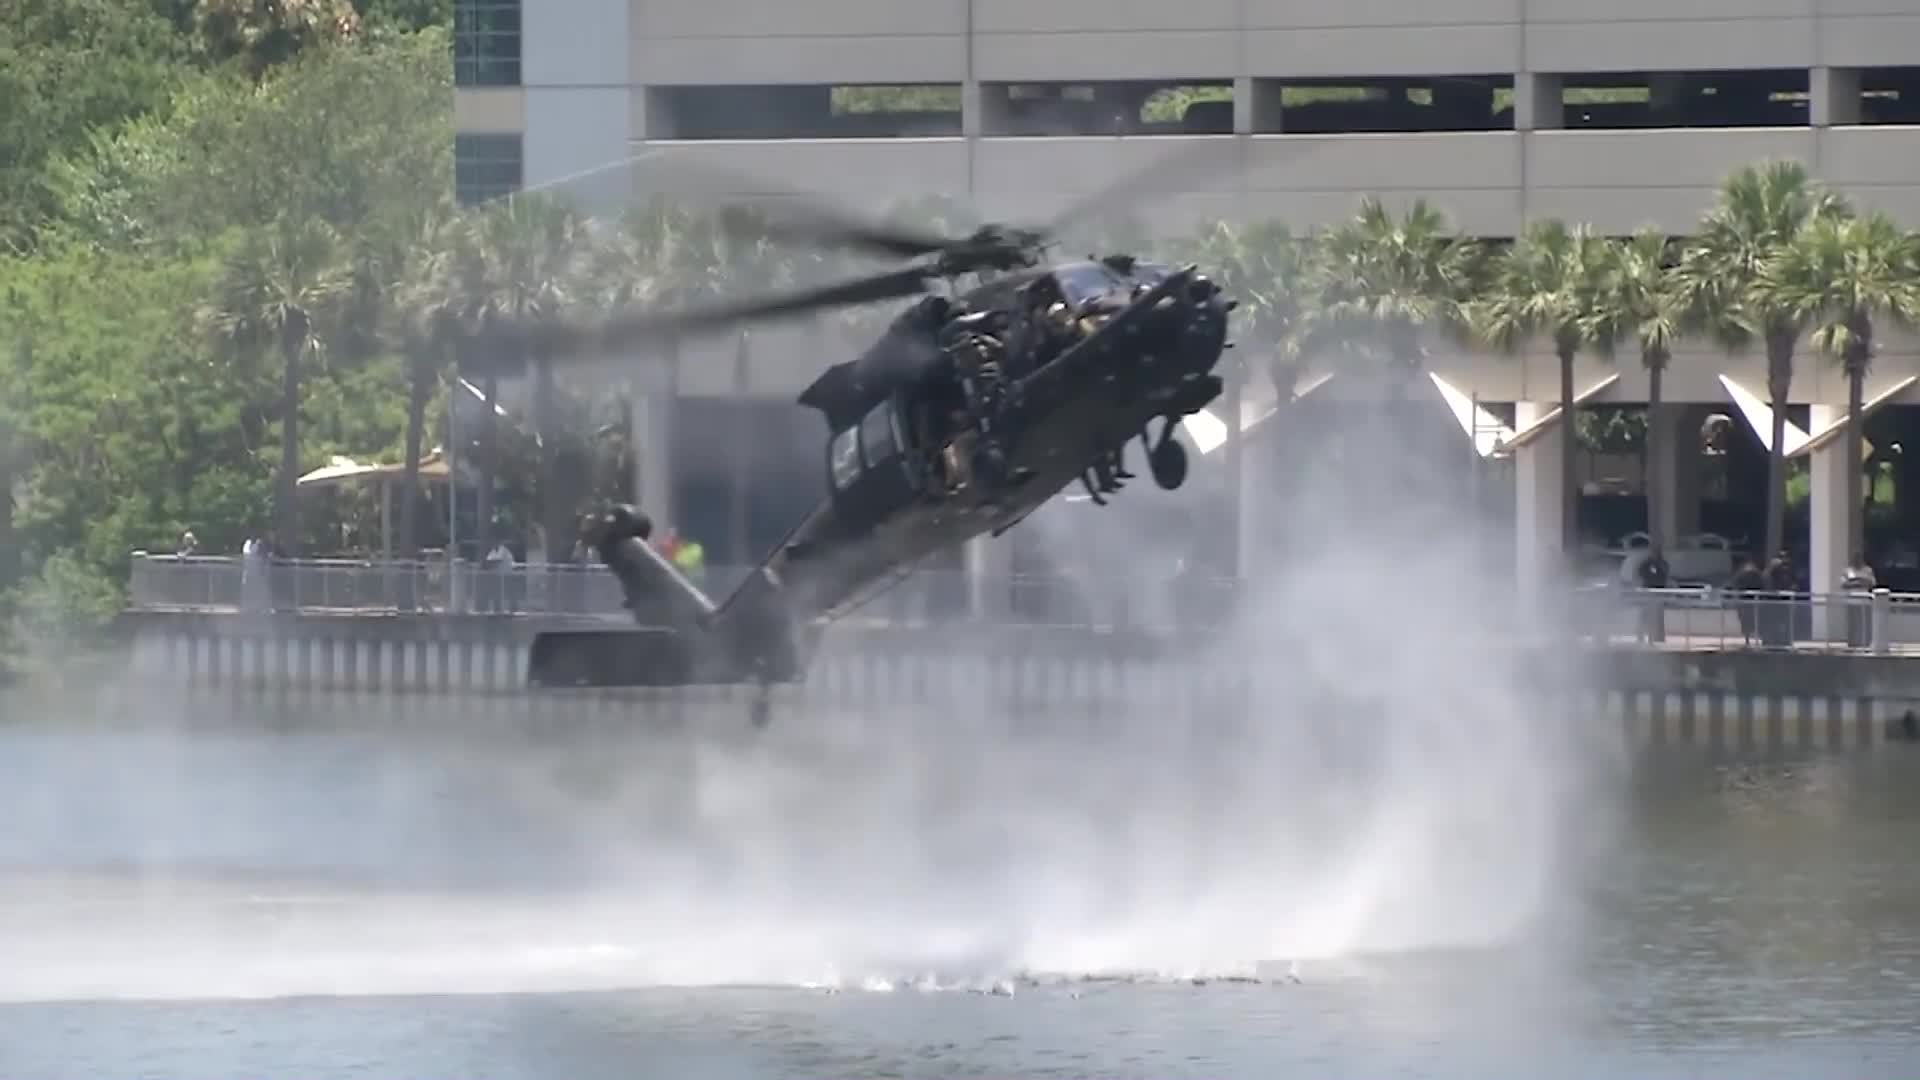 MilitaryGfys, militarygfys, Simulated Hostage Rescue - Tampa FL GIFs